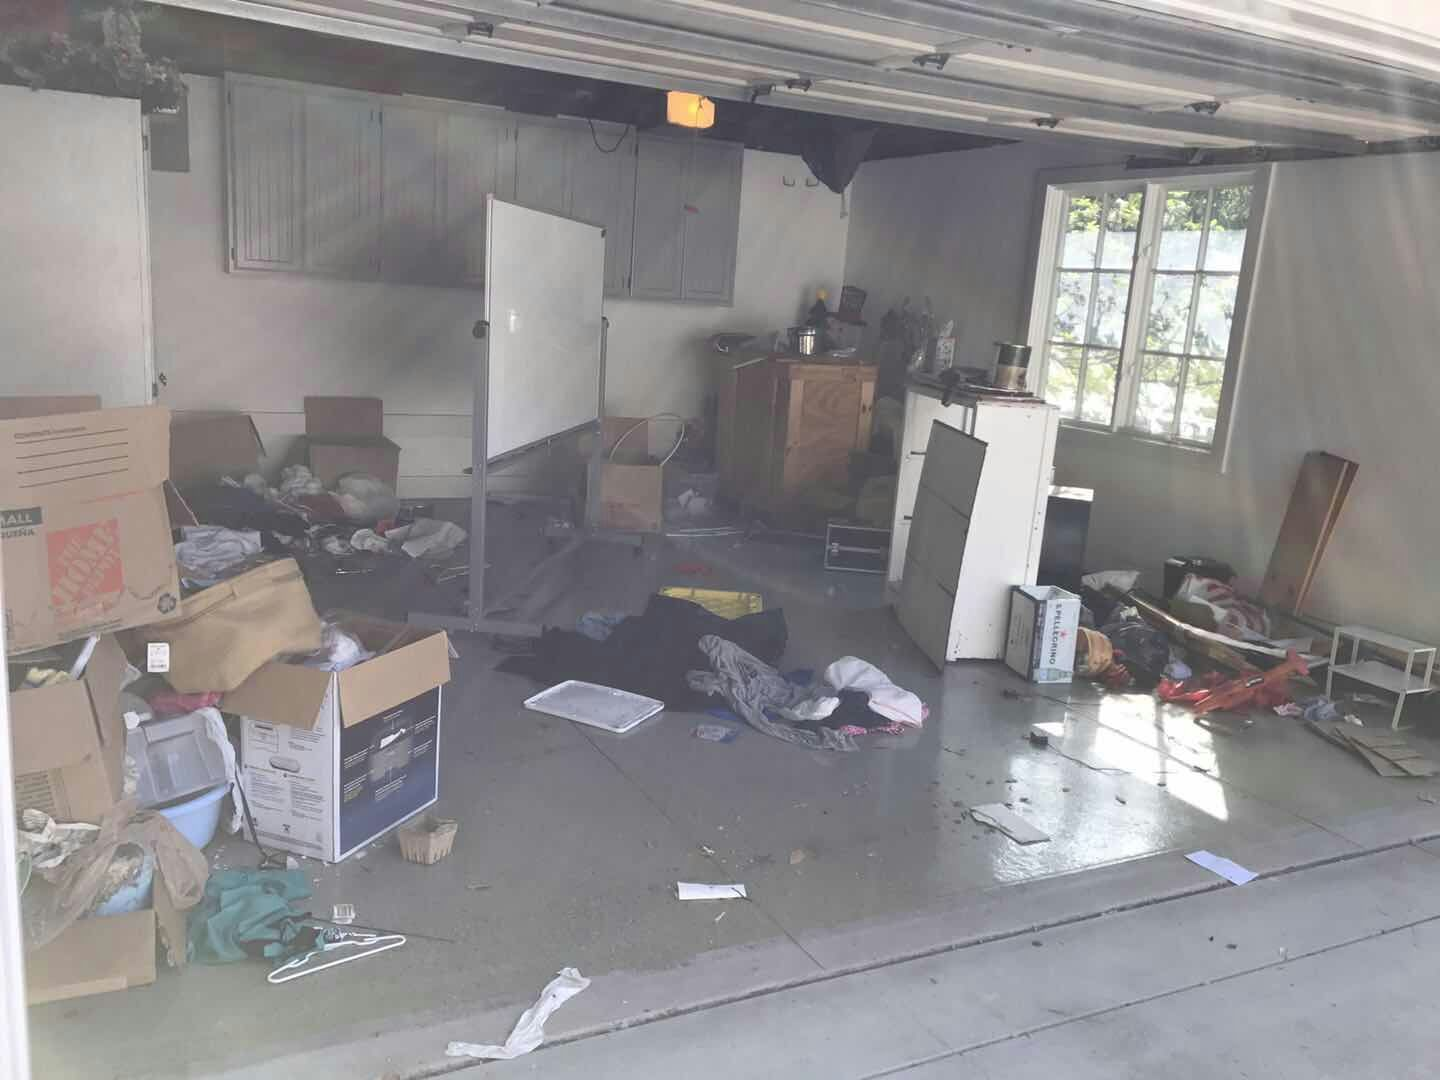 renting-nightmare-garage-mess-from-bad-tenant